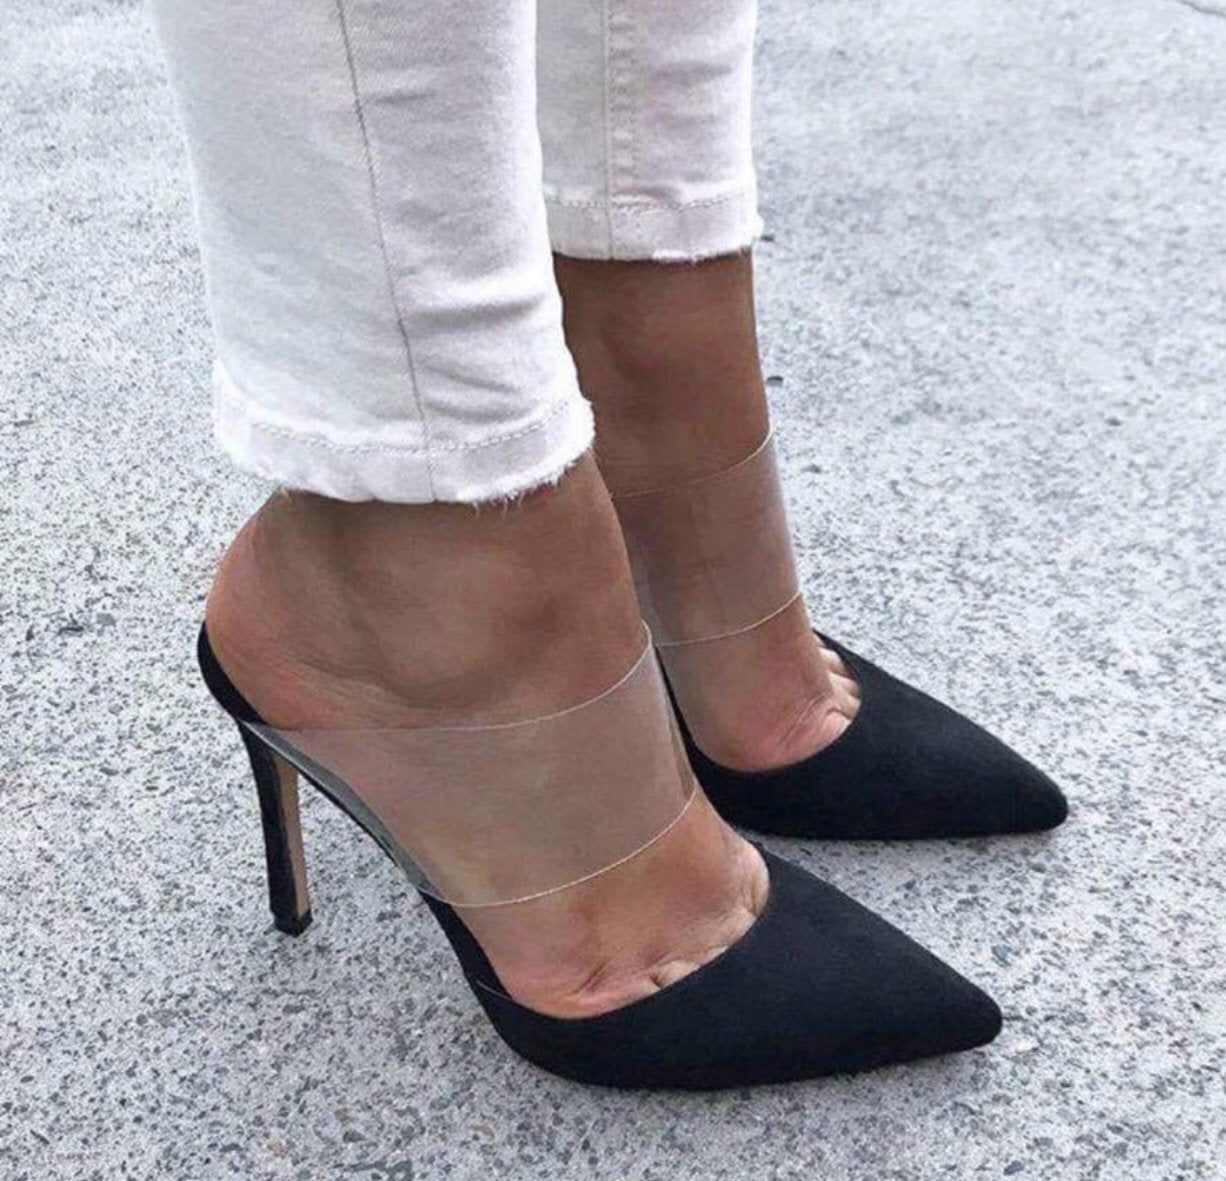 How to wear high heels without the pain - Why George The Label is working towards a pain free future!